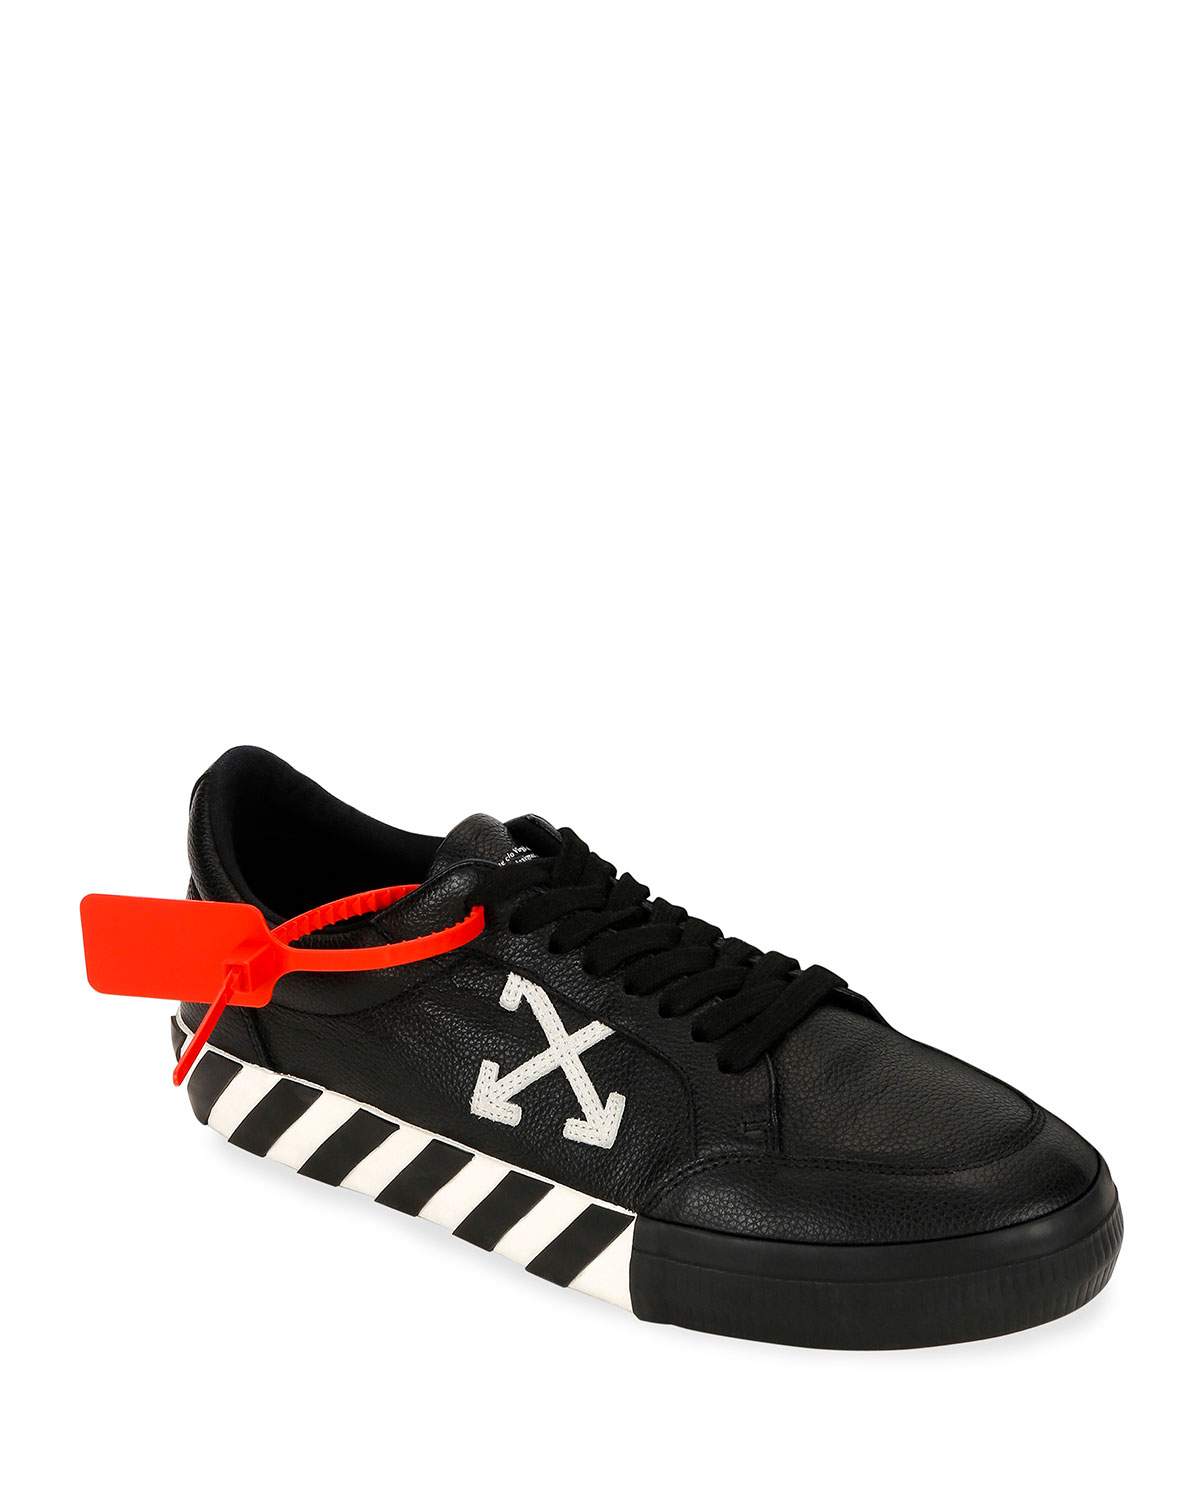 Arrow Leather Sneakers with Stripes